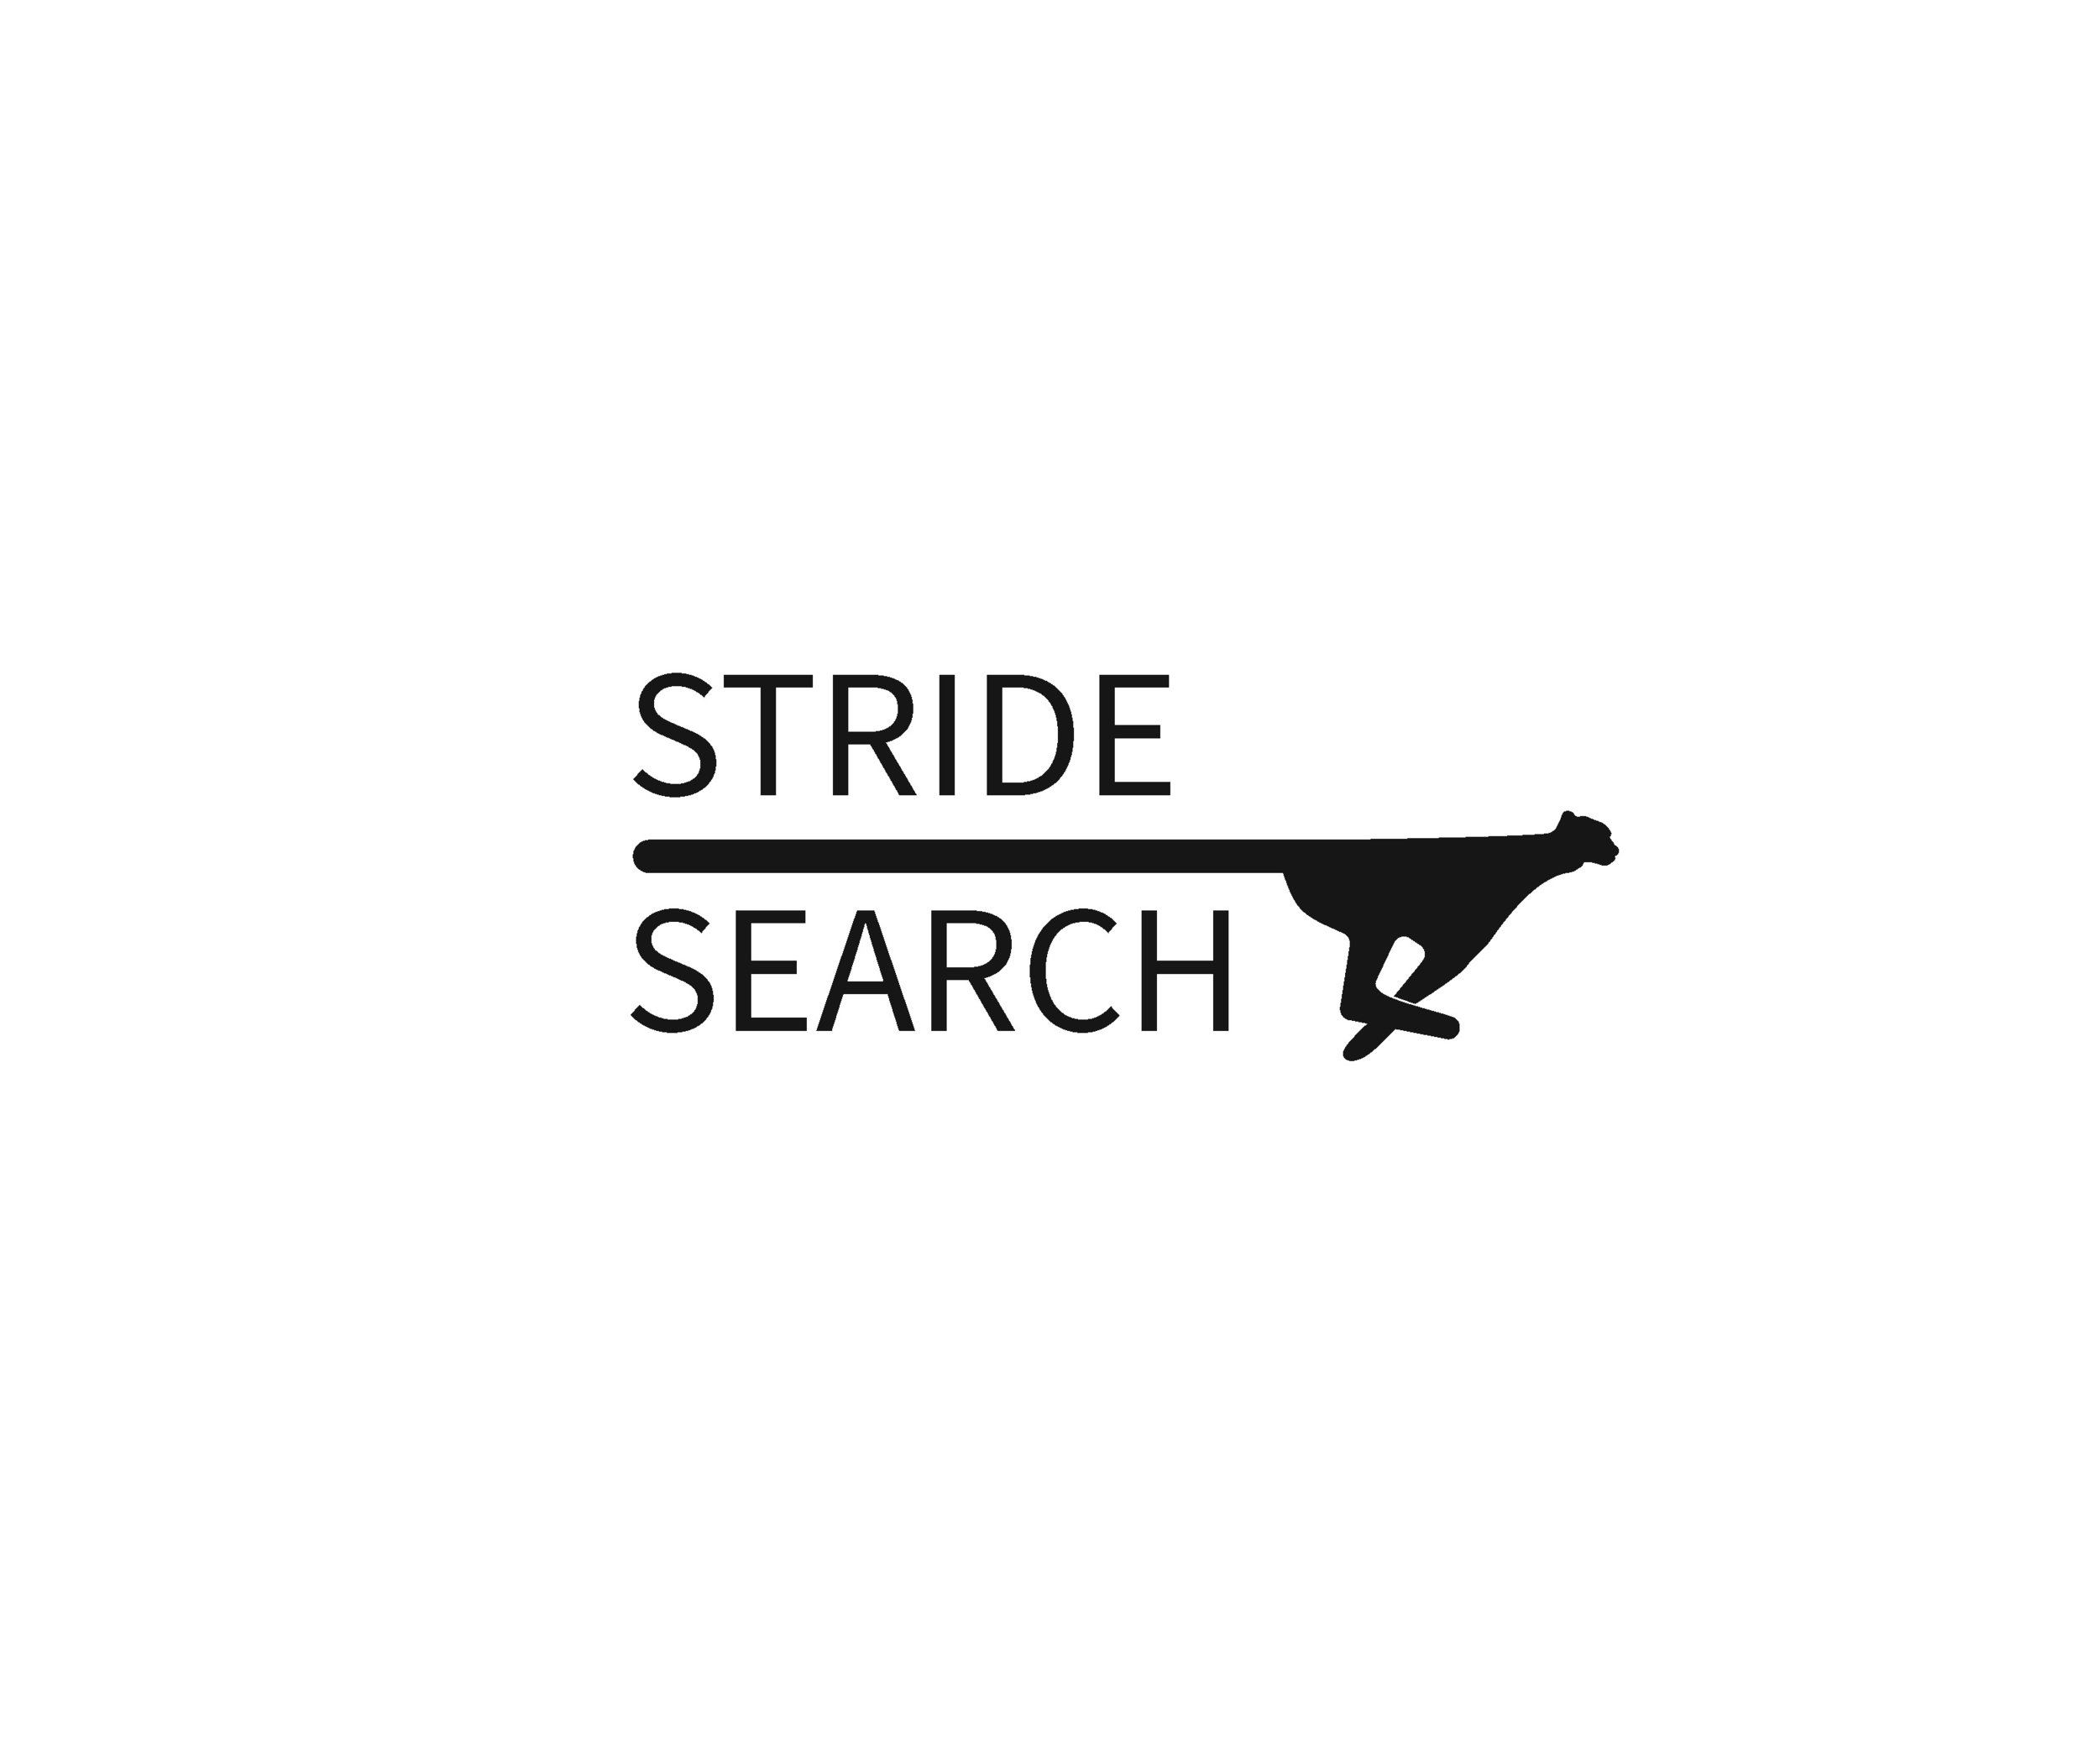 Stride Search identity logo concepts 2 text and cheetah